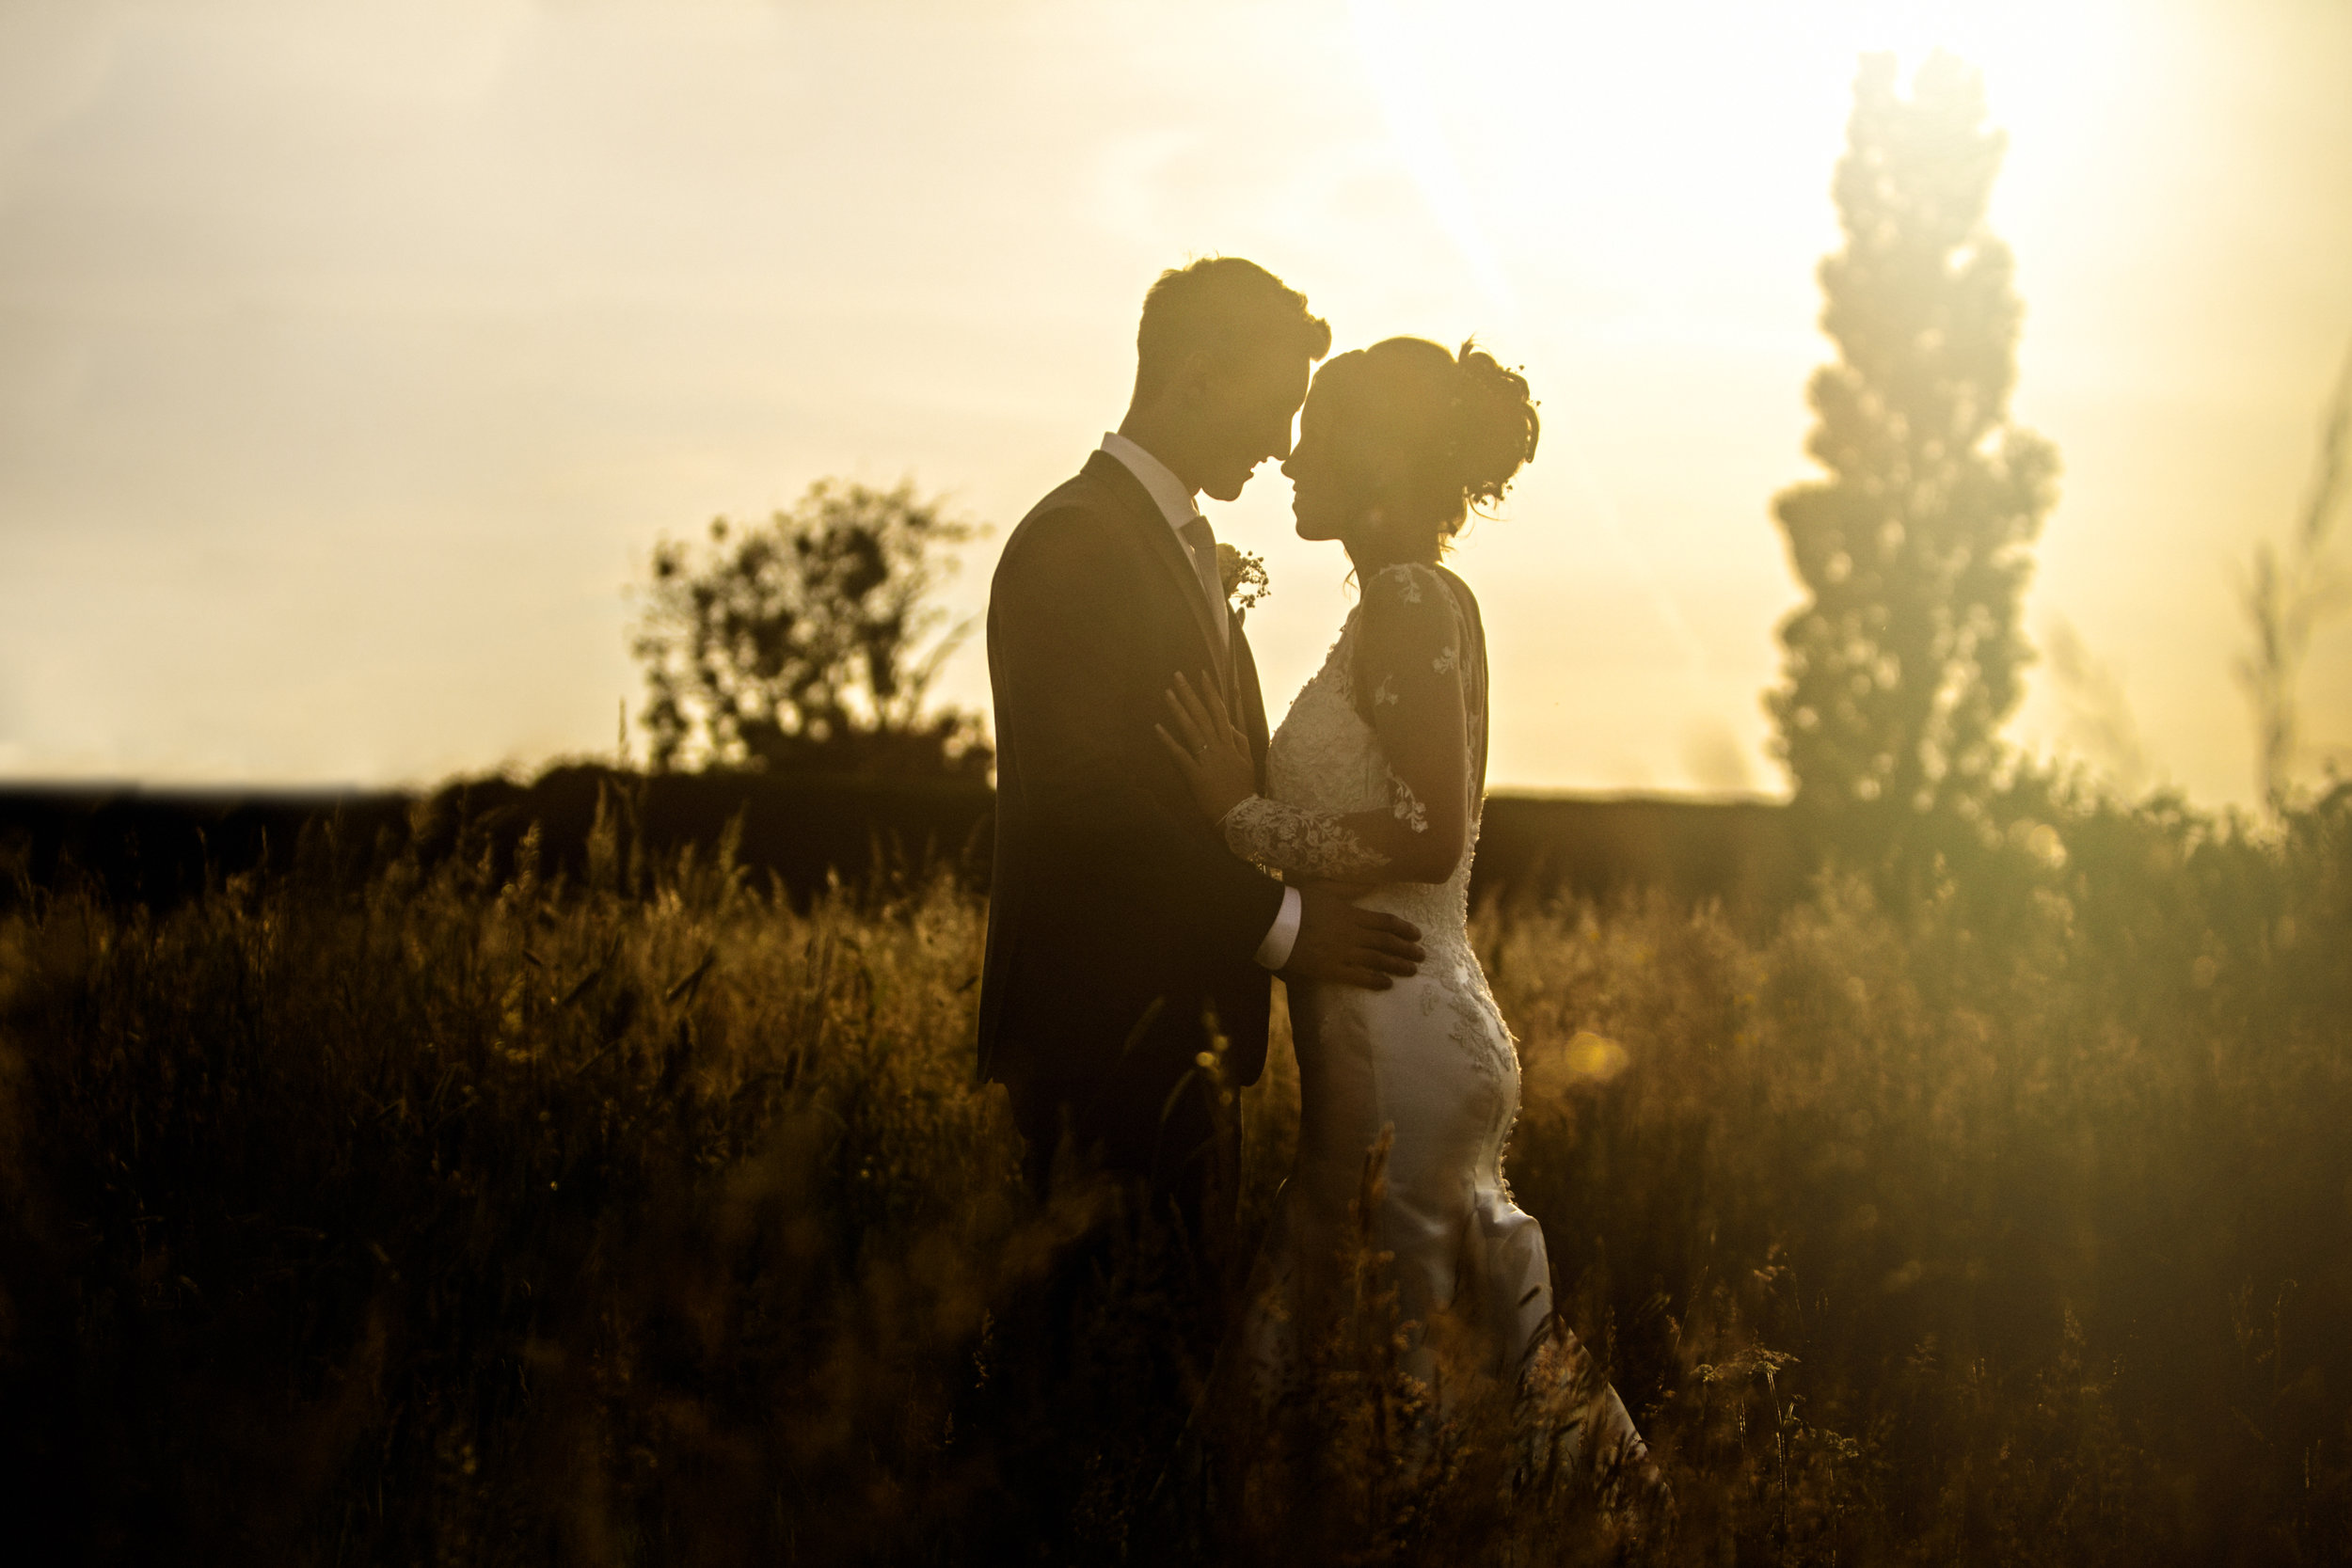 Your Day, Your Story - Relaxed wedding photography capturing precious moments and stunning portraits